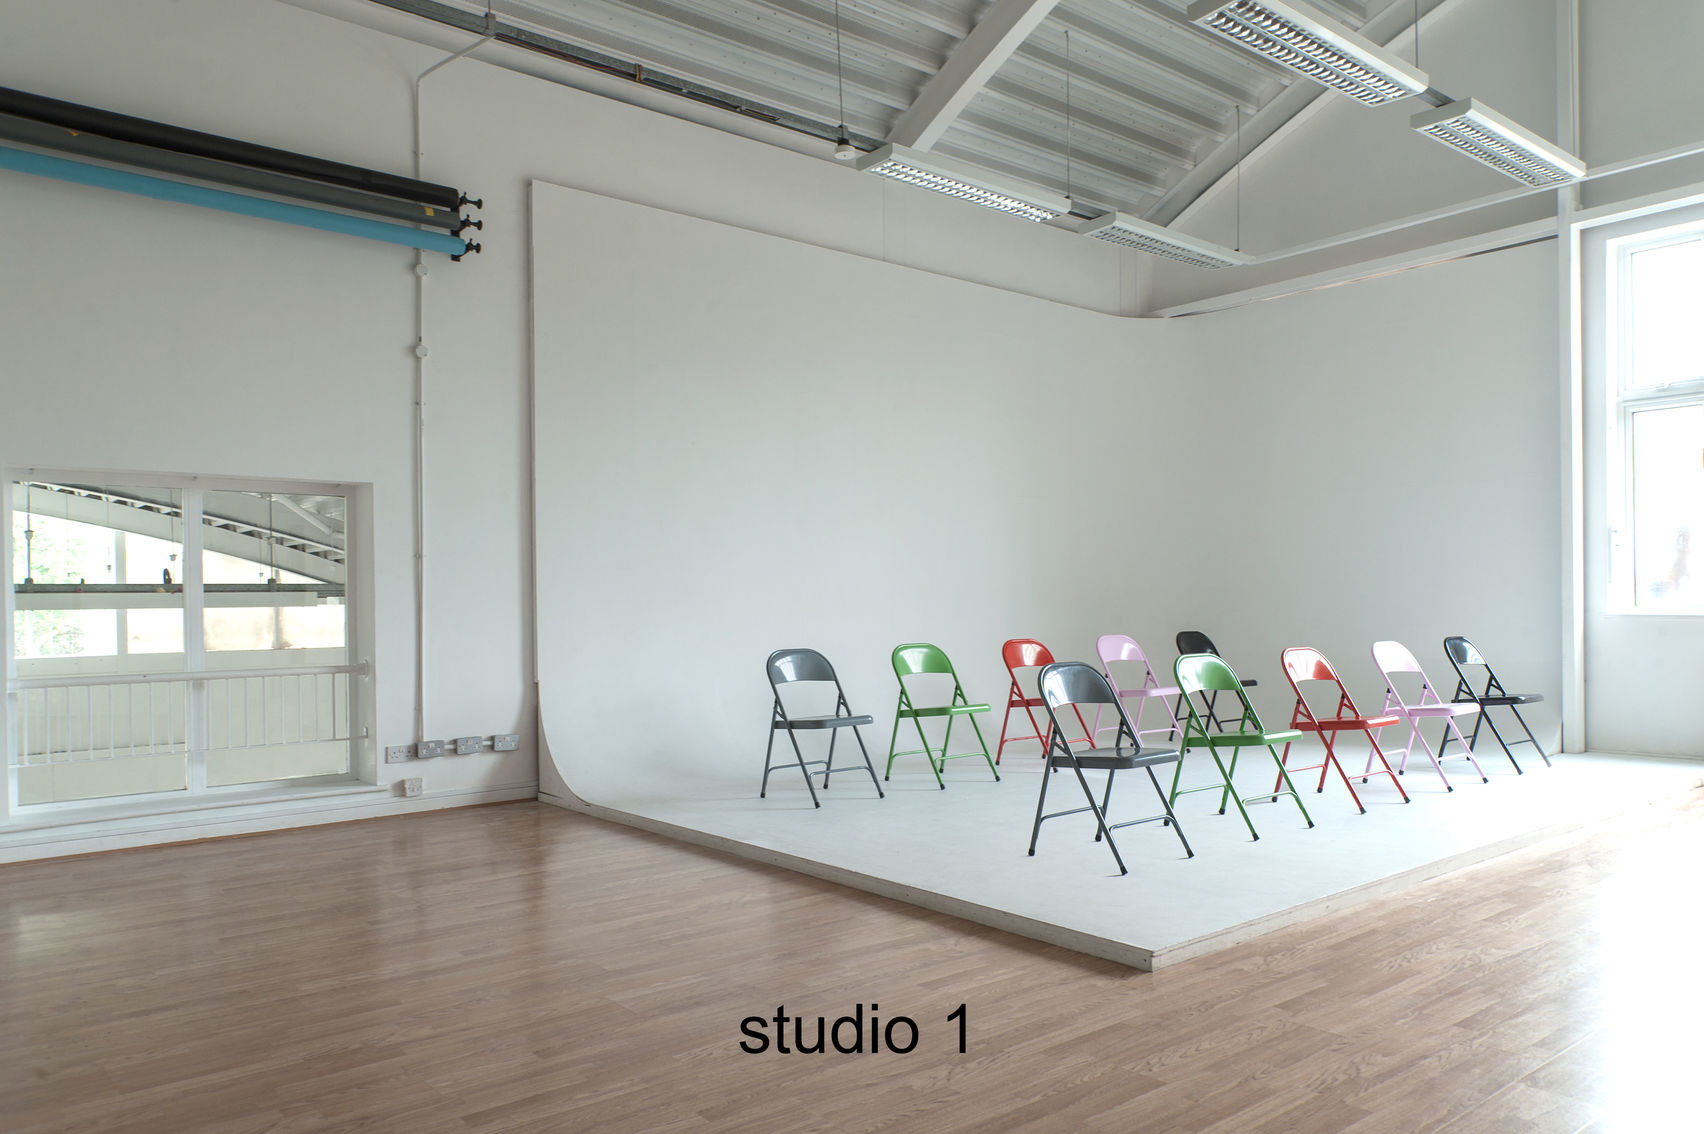 Cre8 Studio, The Old Baths, Studio 1